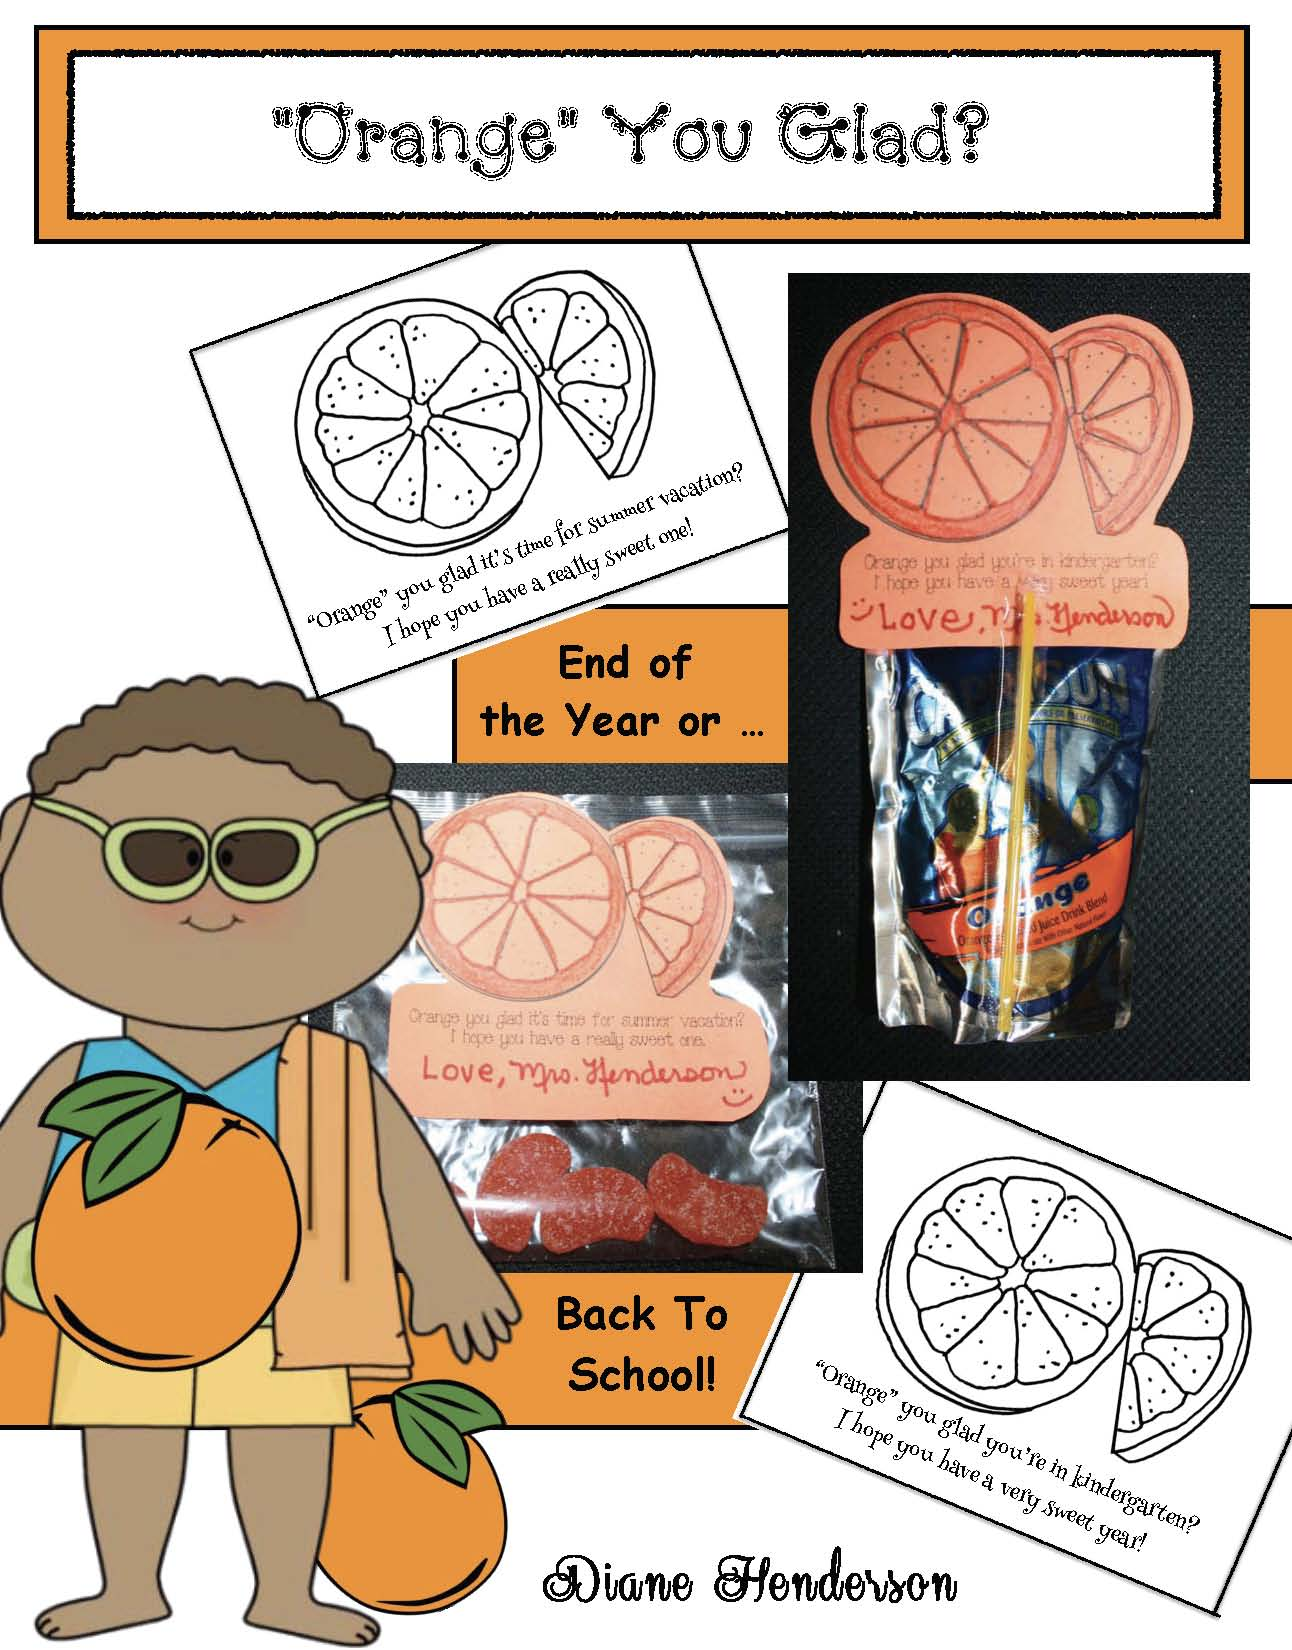 orange you glad end of the year treat, treat bags for school, back to school treat bags